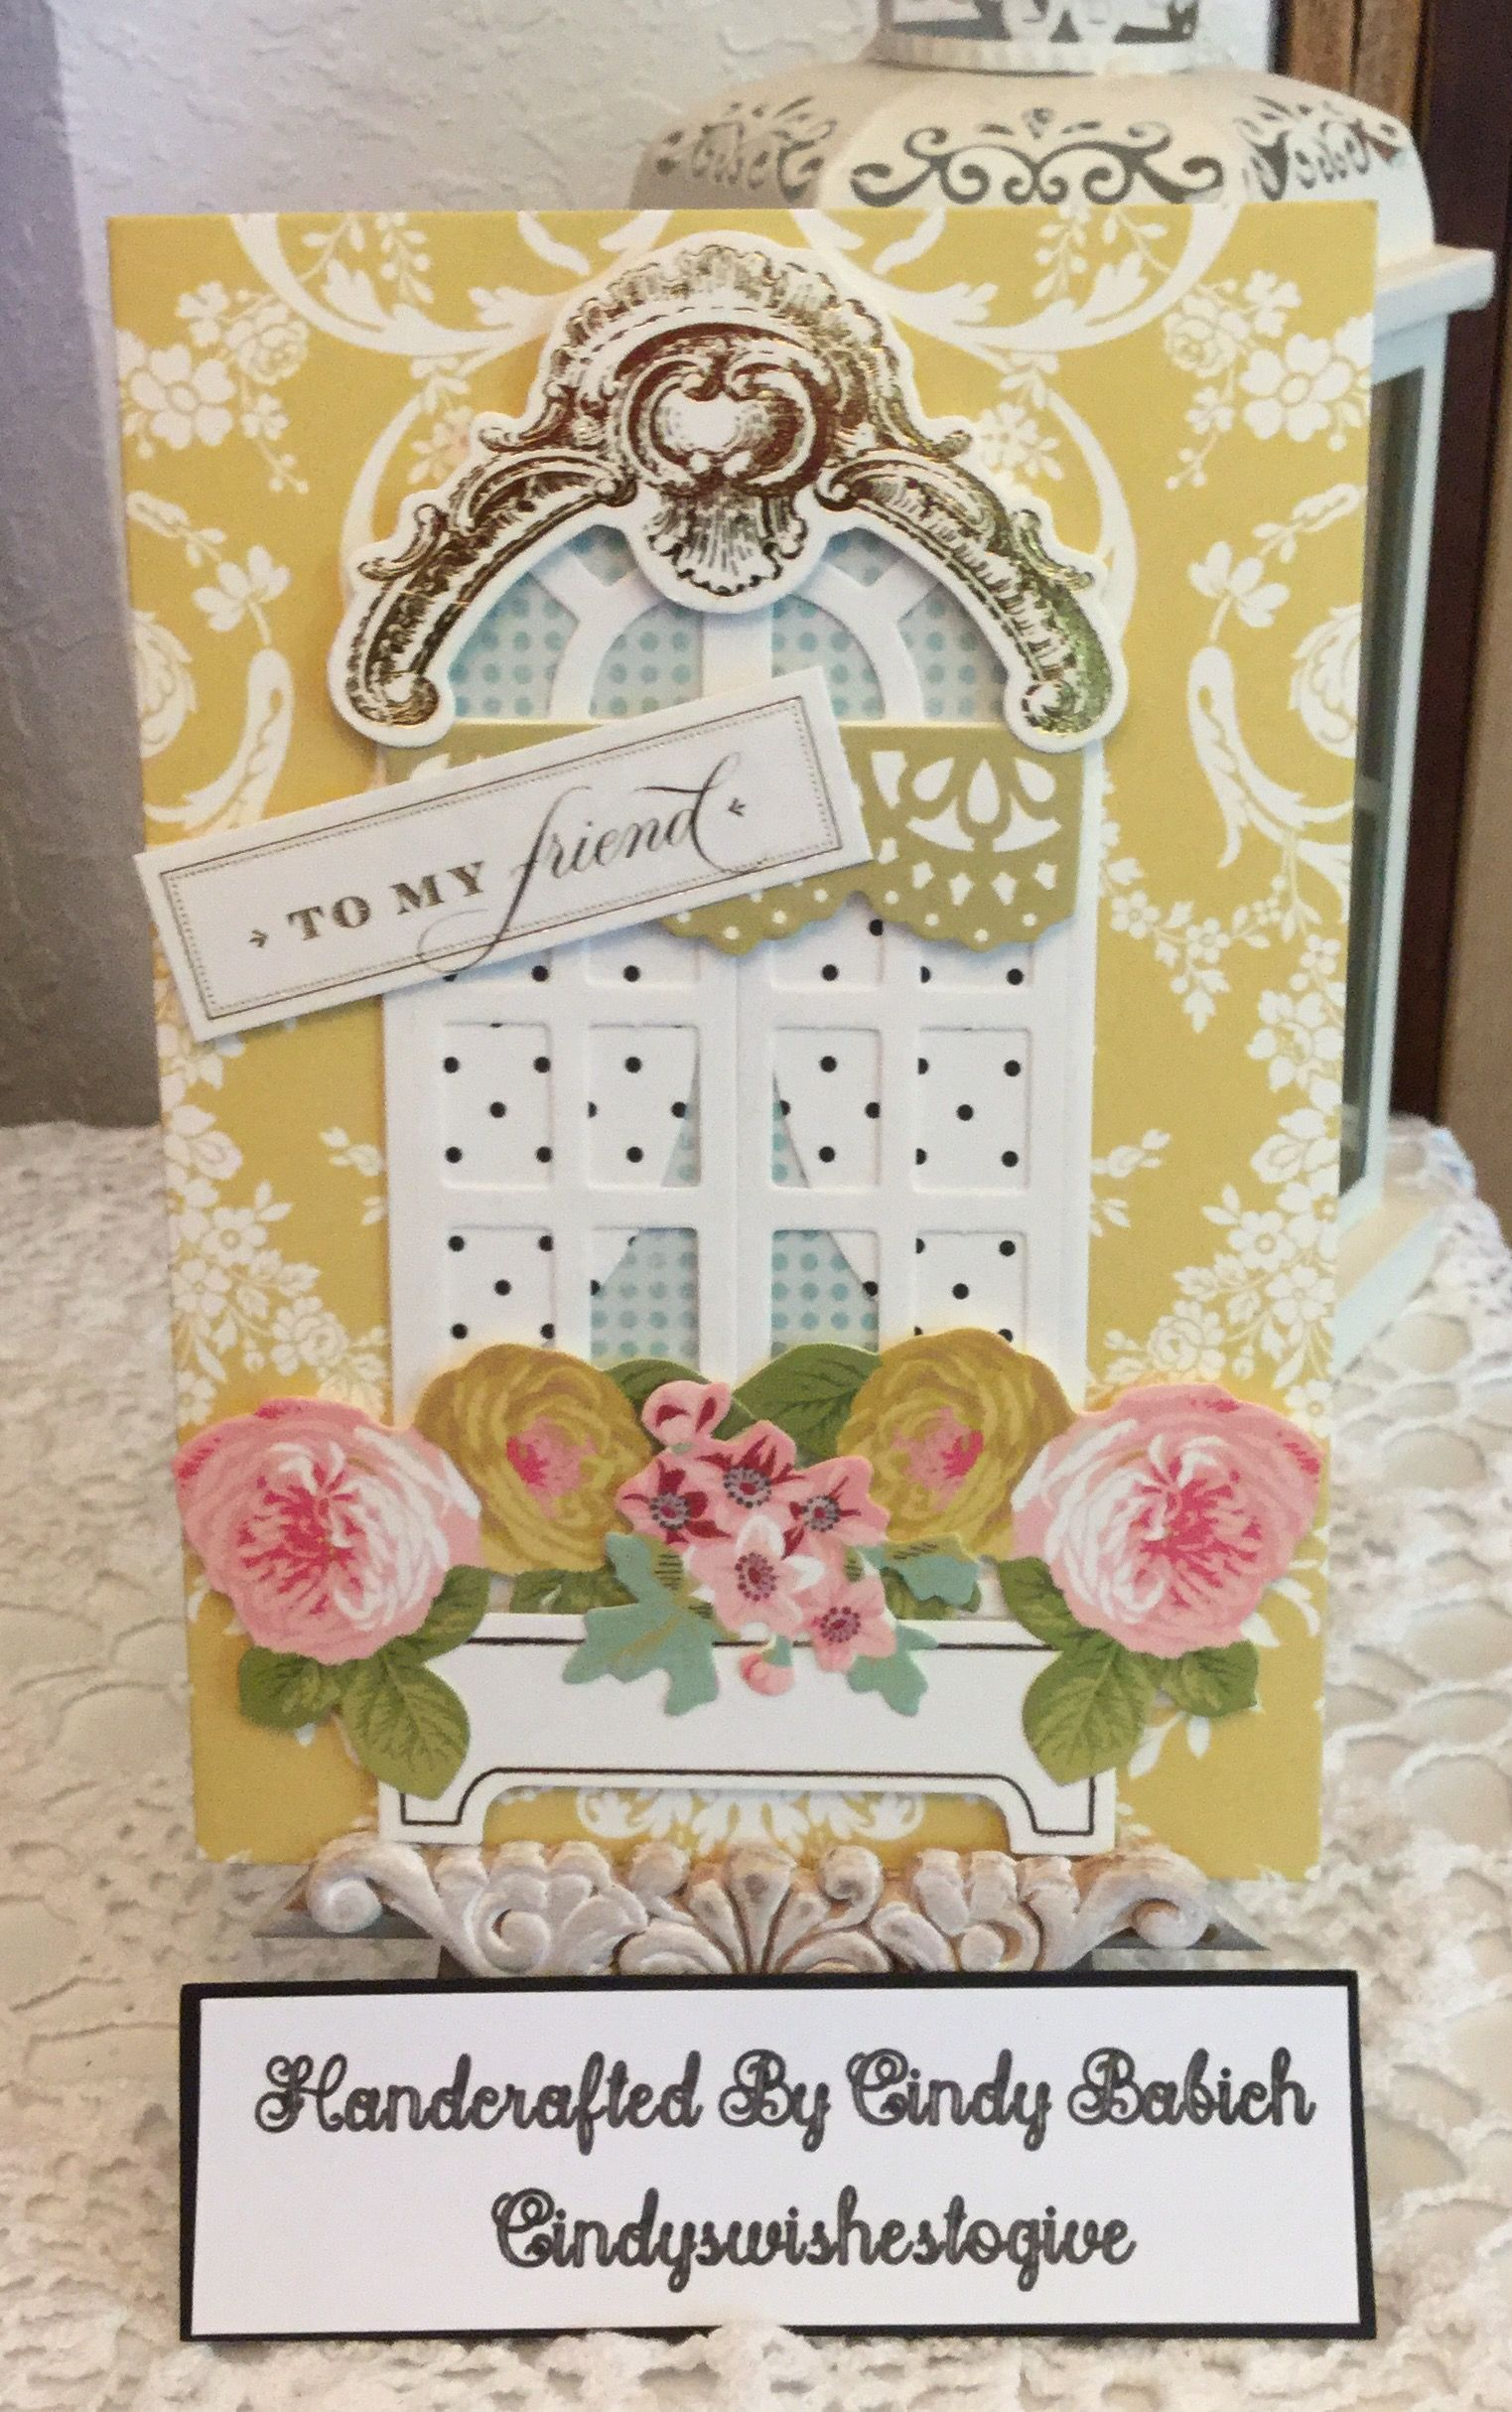 Friend Birthday Card Made With Anna Griffin Window Ledge Making Kit Handcrafted By Cindy Babich Cindyswishestogive 2017